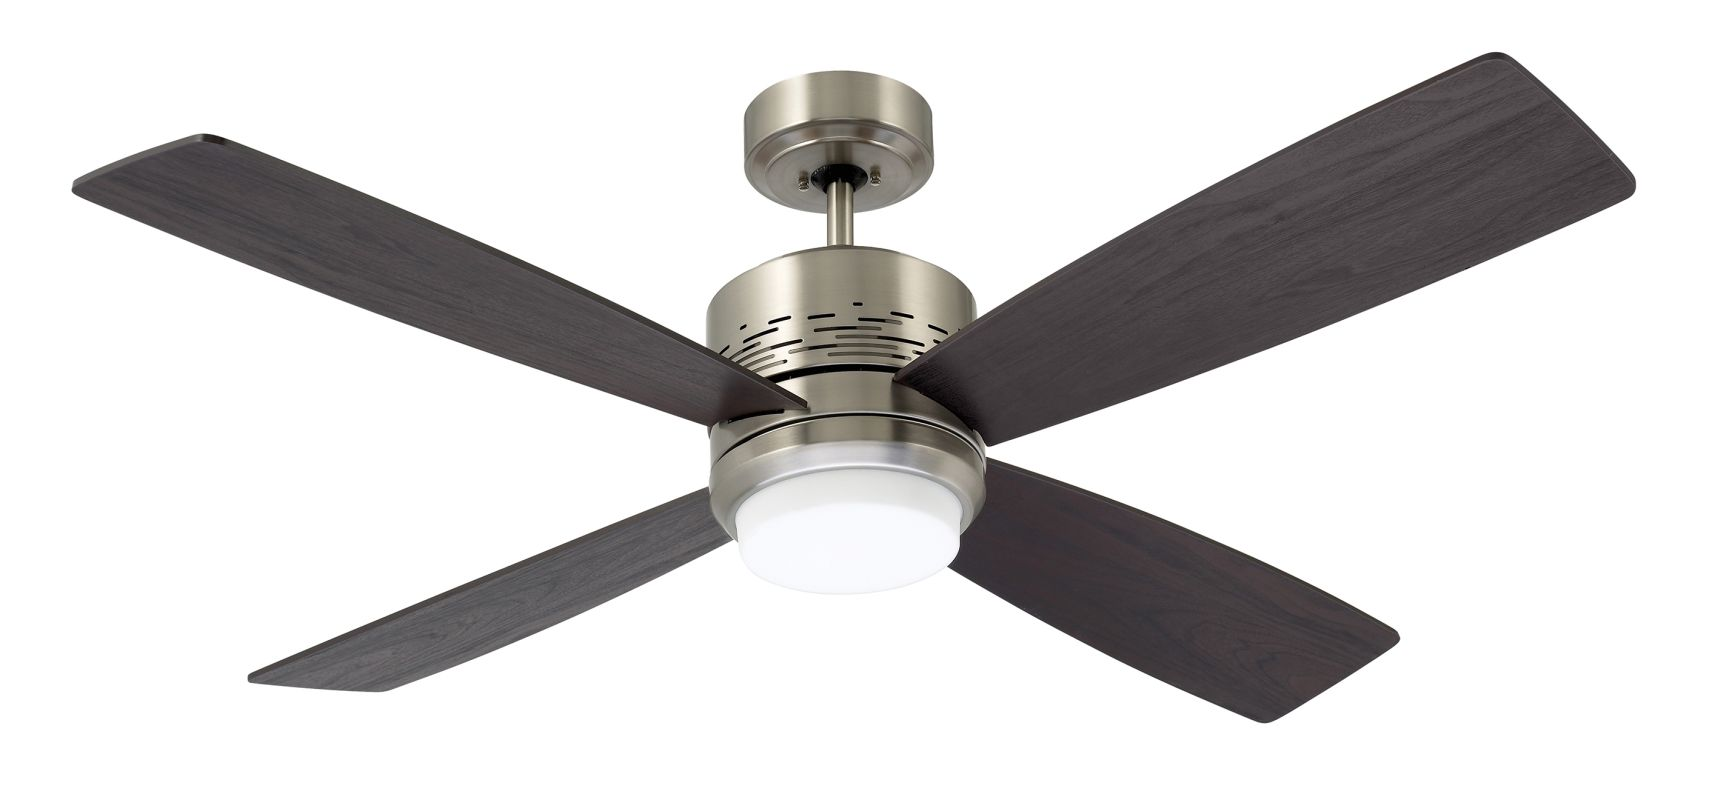 "Emerson CF430 Highrise 50"" 4 Blade Ceiling Fan - Blades and Light Kit"